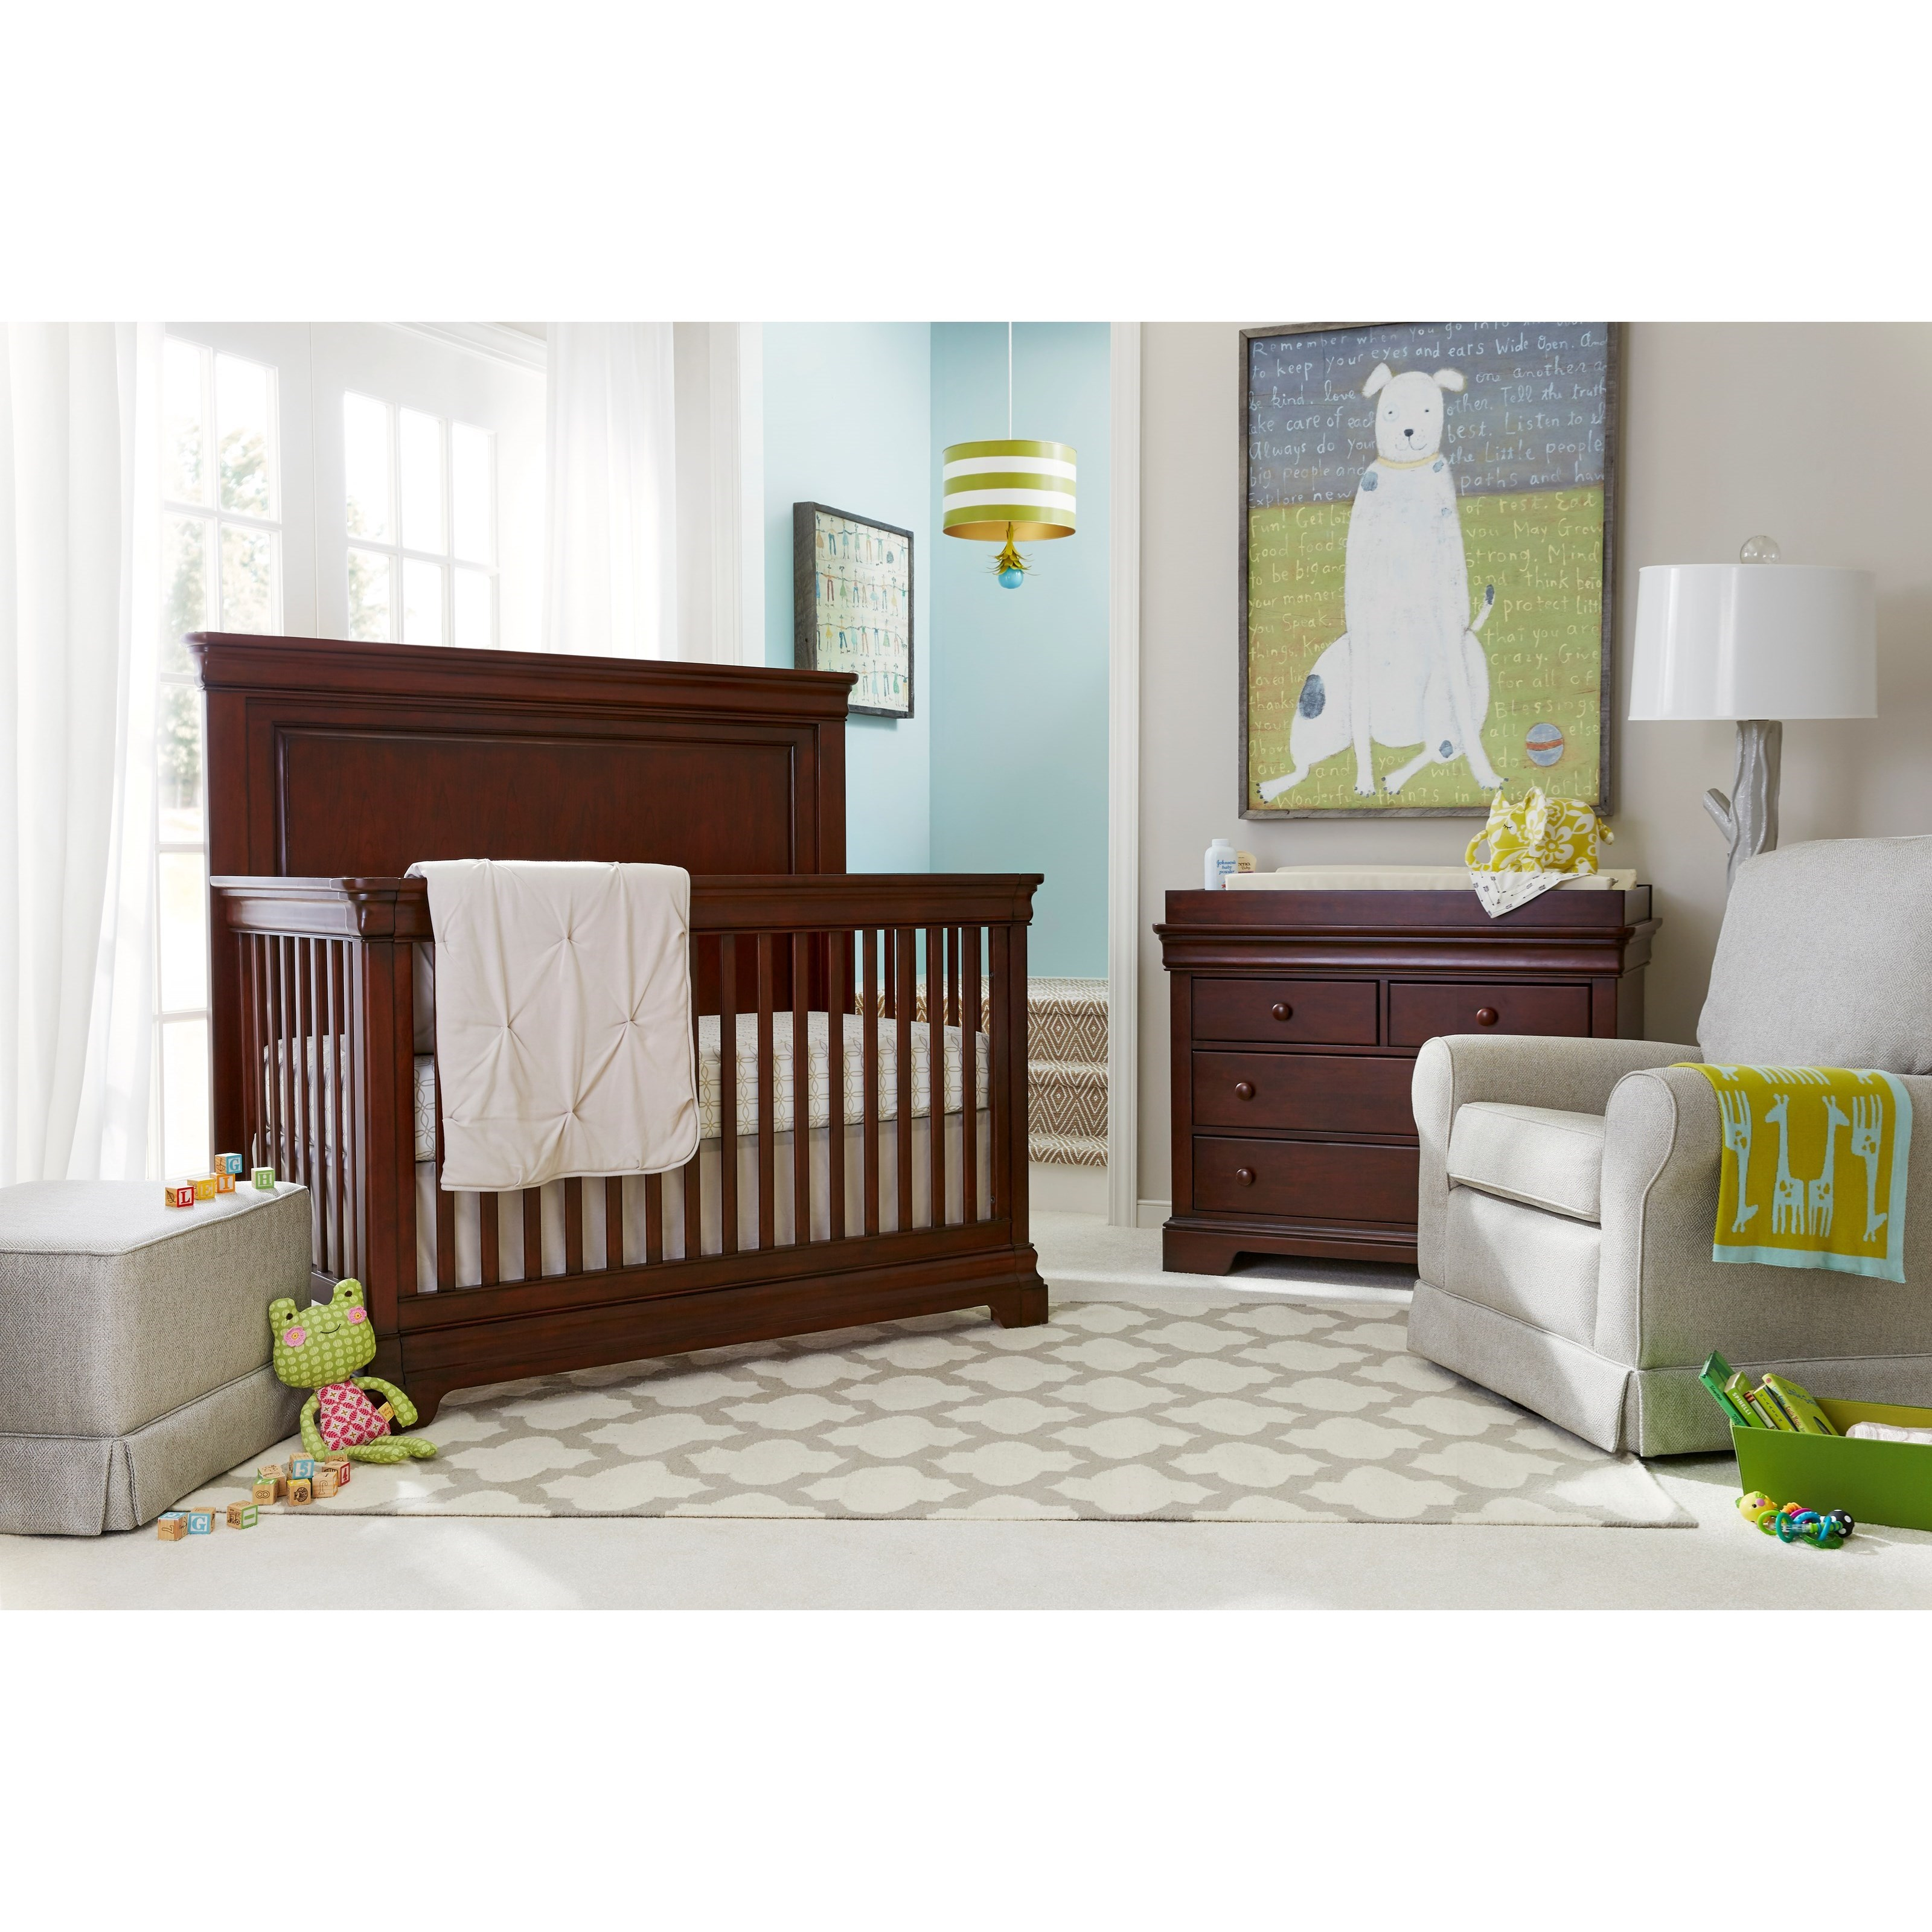 Stone & Leigh Furniture Teaberry Lane Crib Bedroom Group - Item Number: 575-13 C Bedroom Group 1